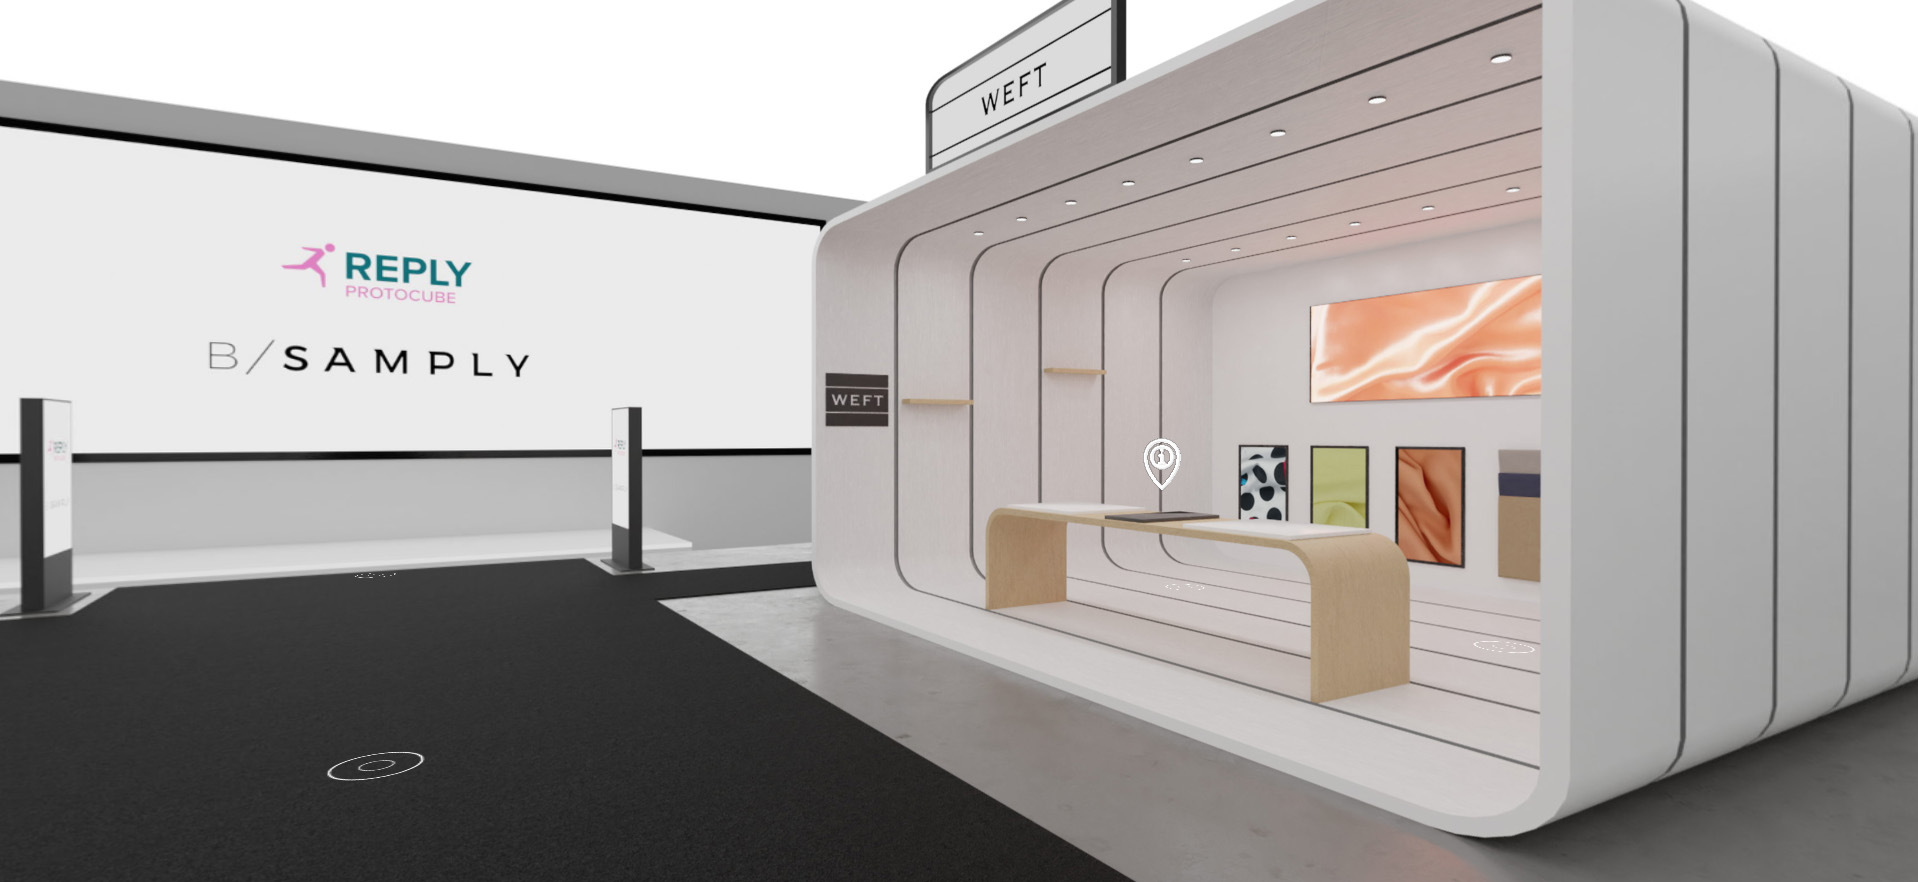 Bsamply Tradeshow Project 3D virtual booth 01